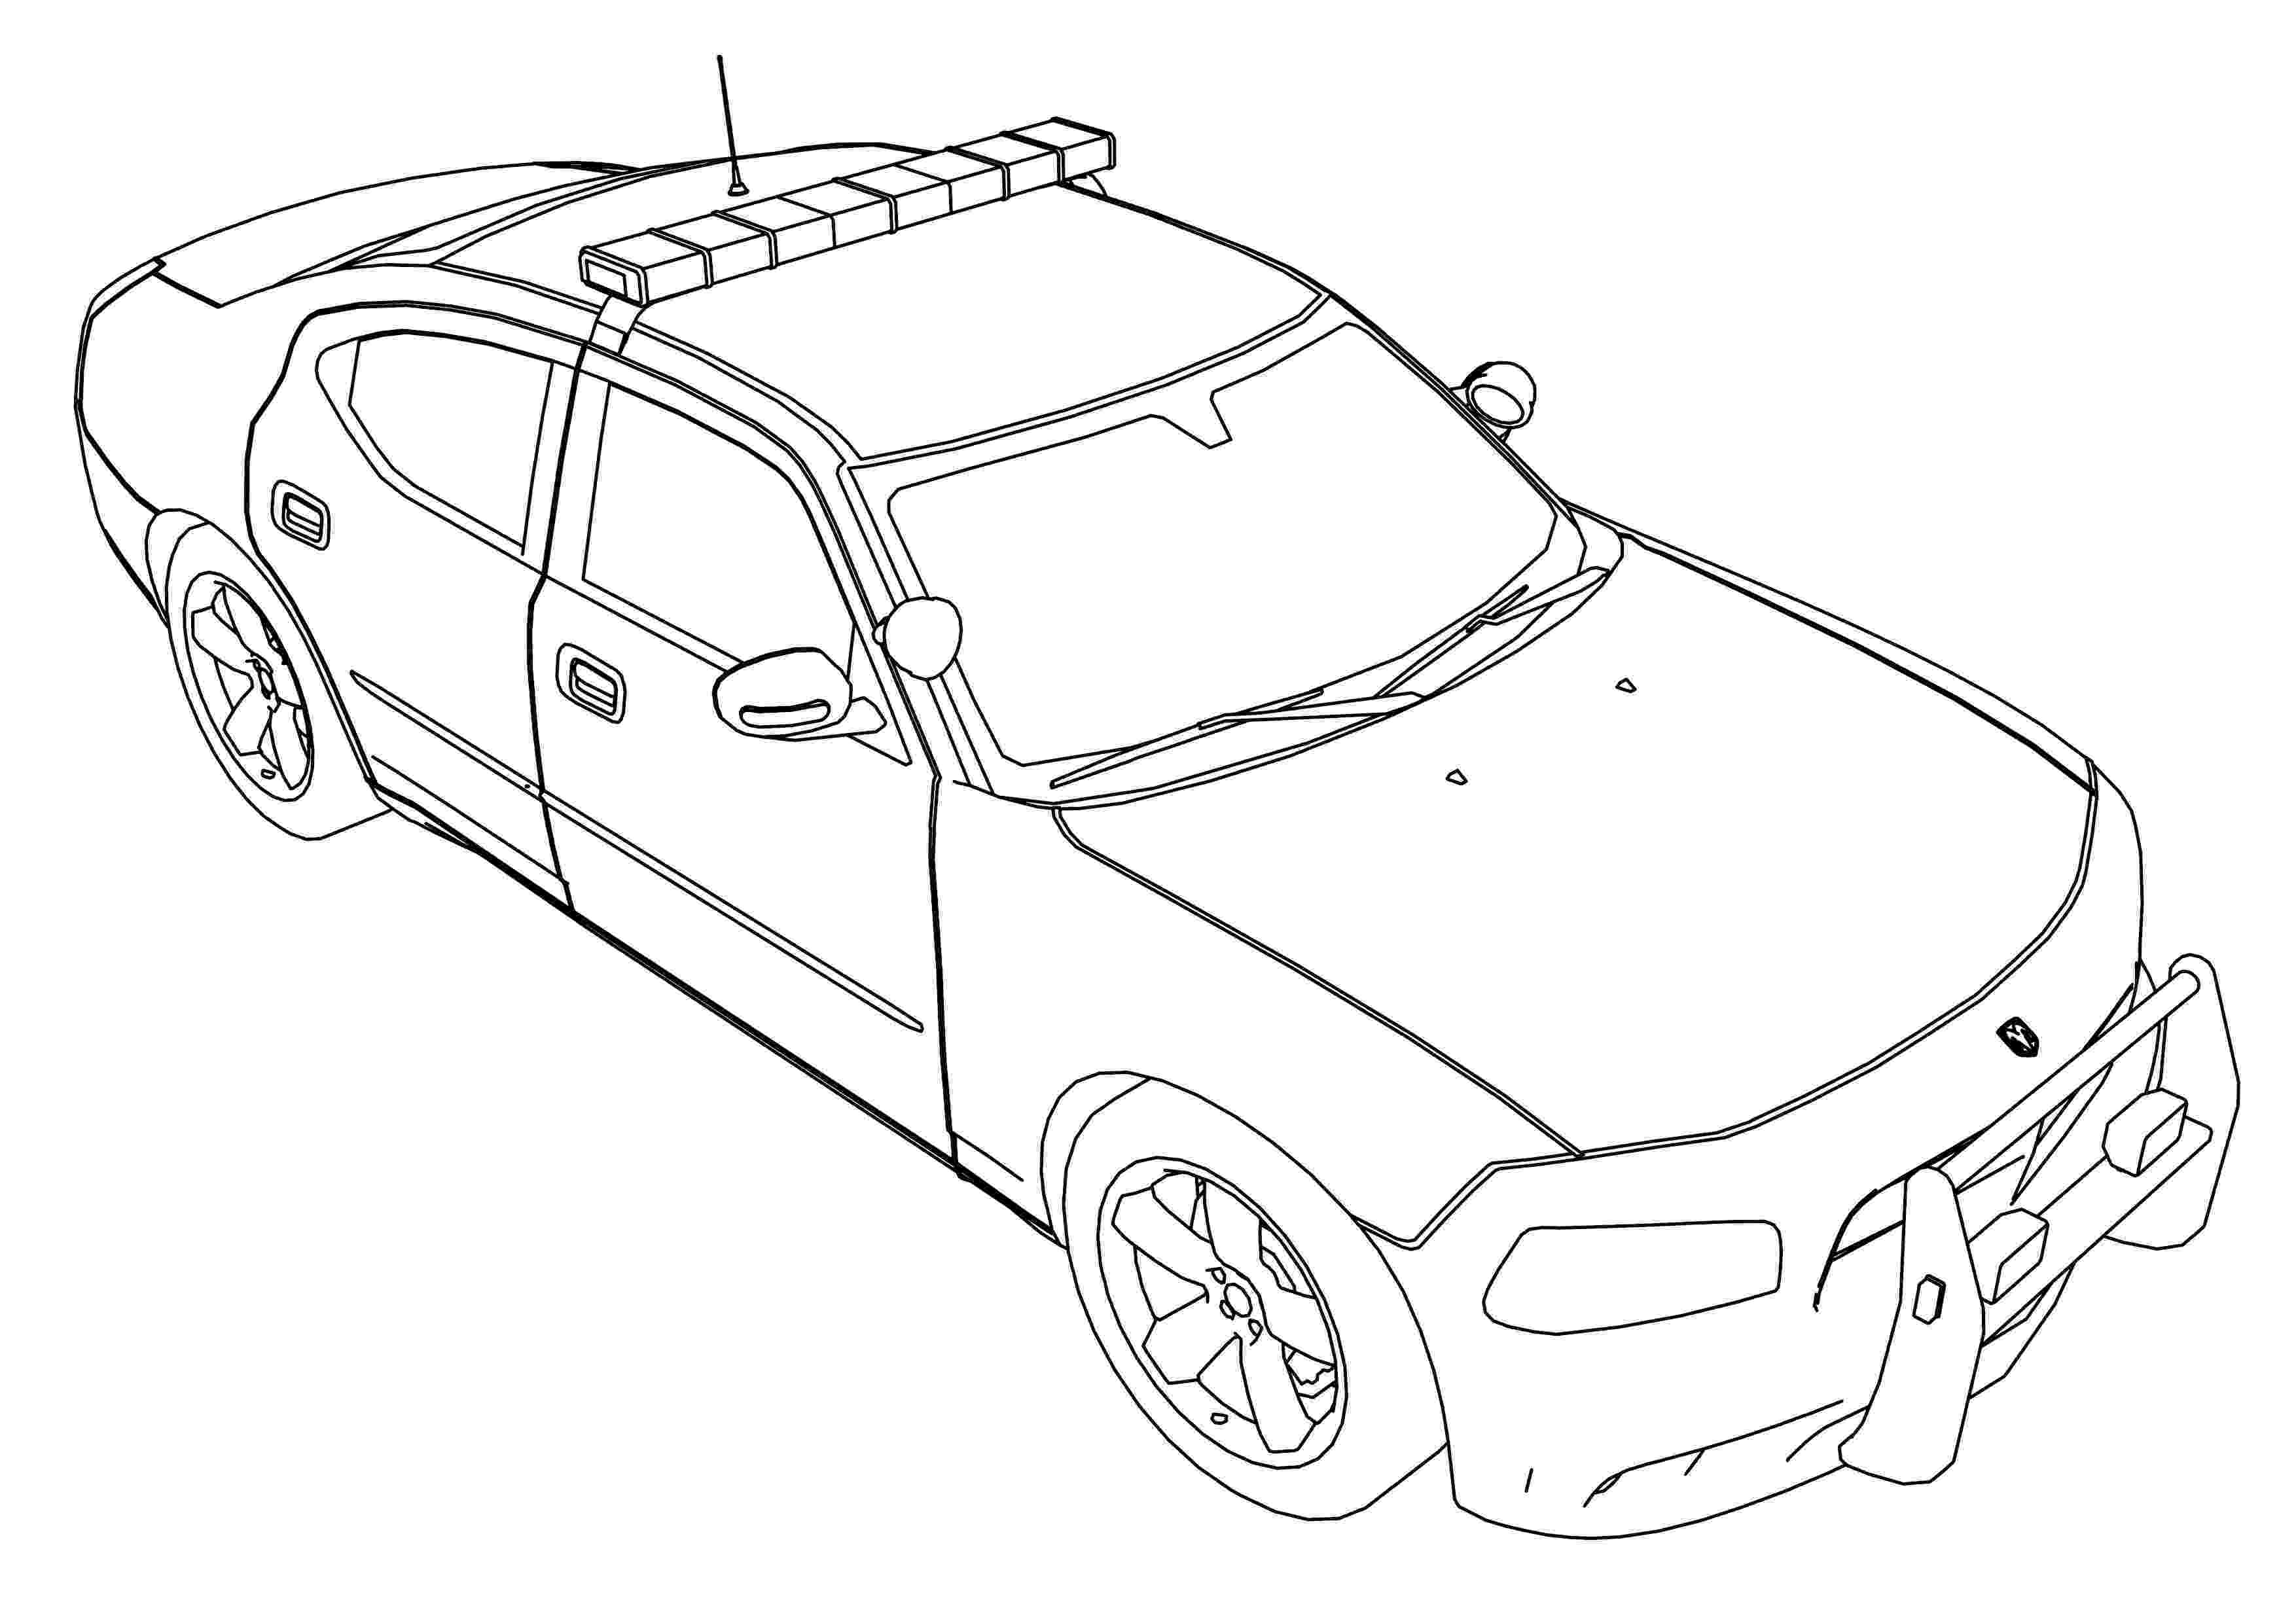 car coloring sheet police car coloring pages to download and print for free coloring sheet car